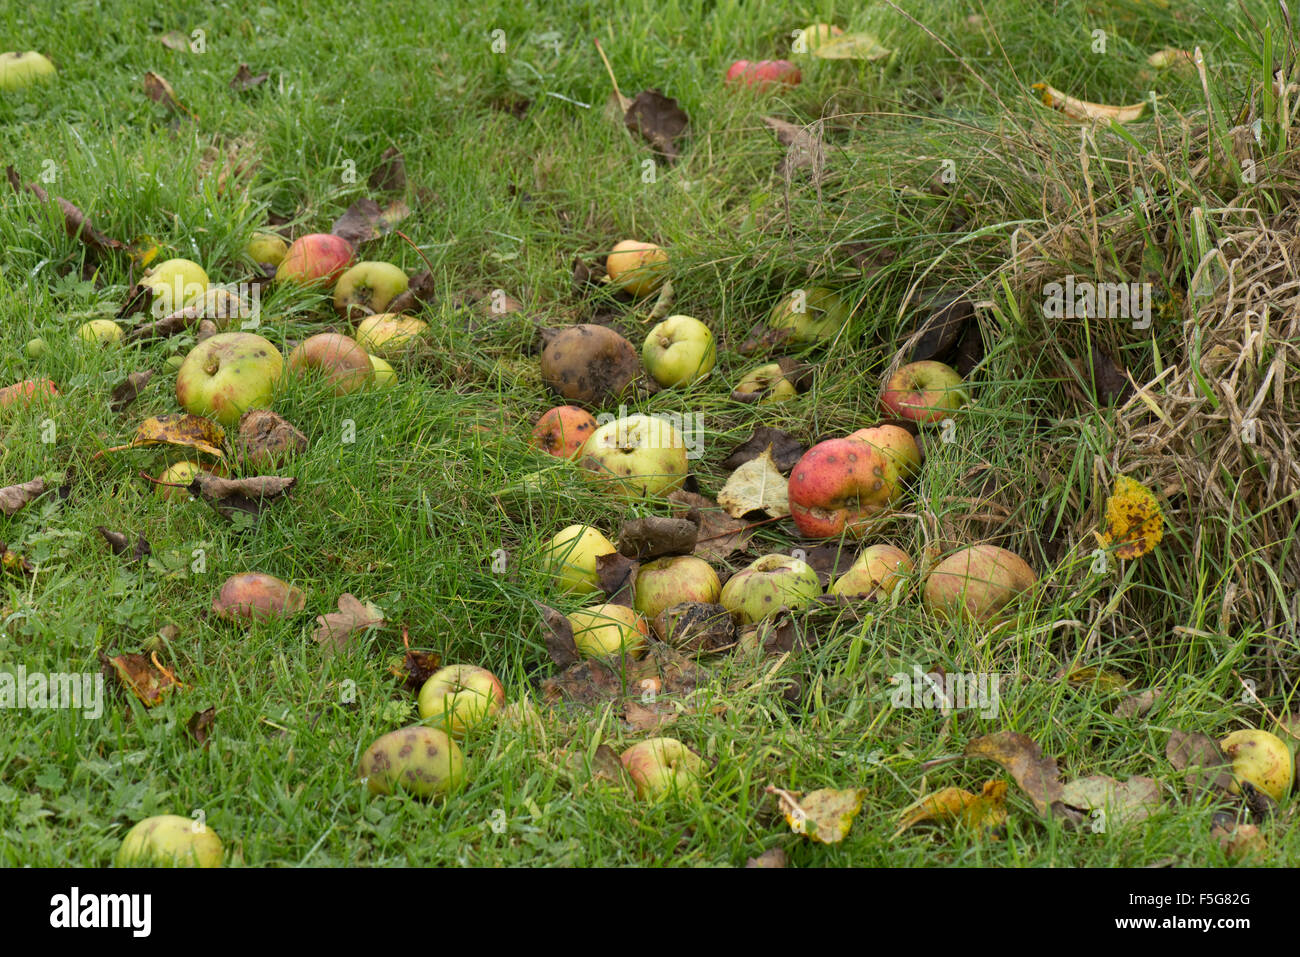 Windfalls Apples Fallen From The Tree Lying In Grass A Wet Warm Autumn